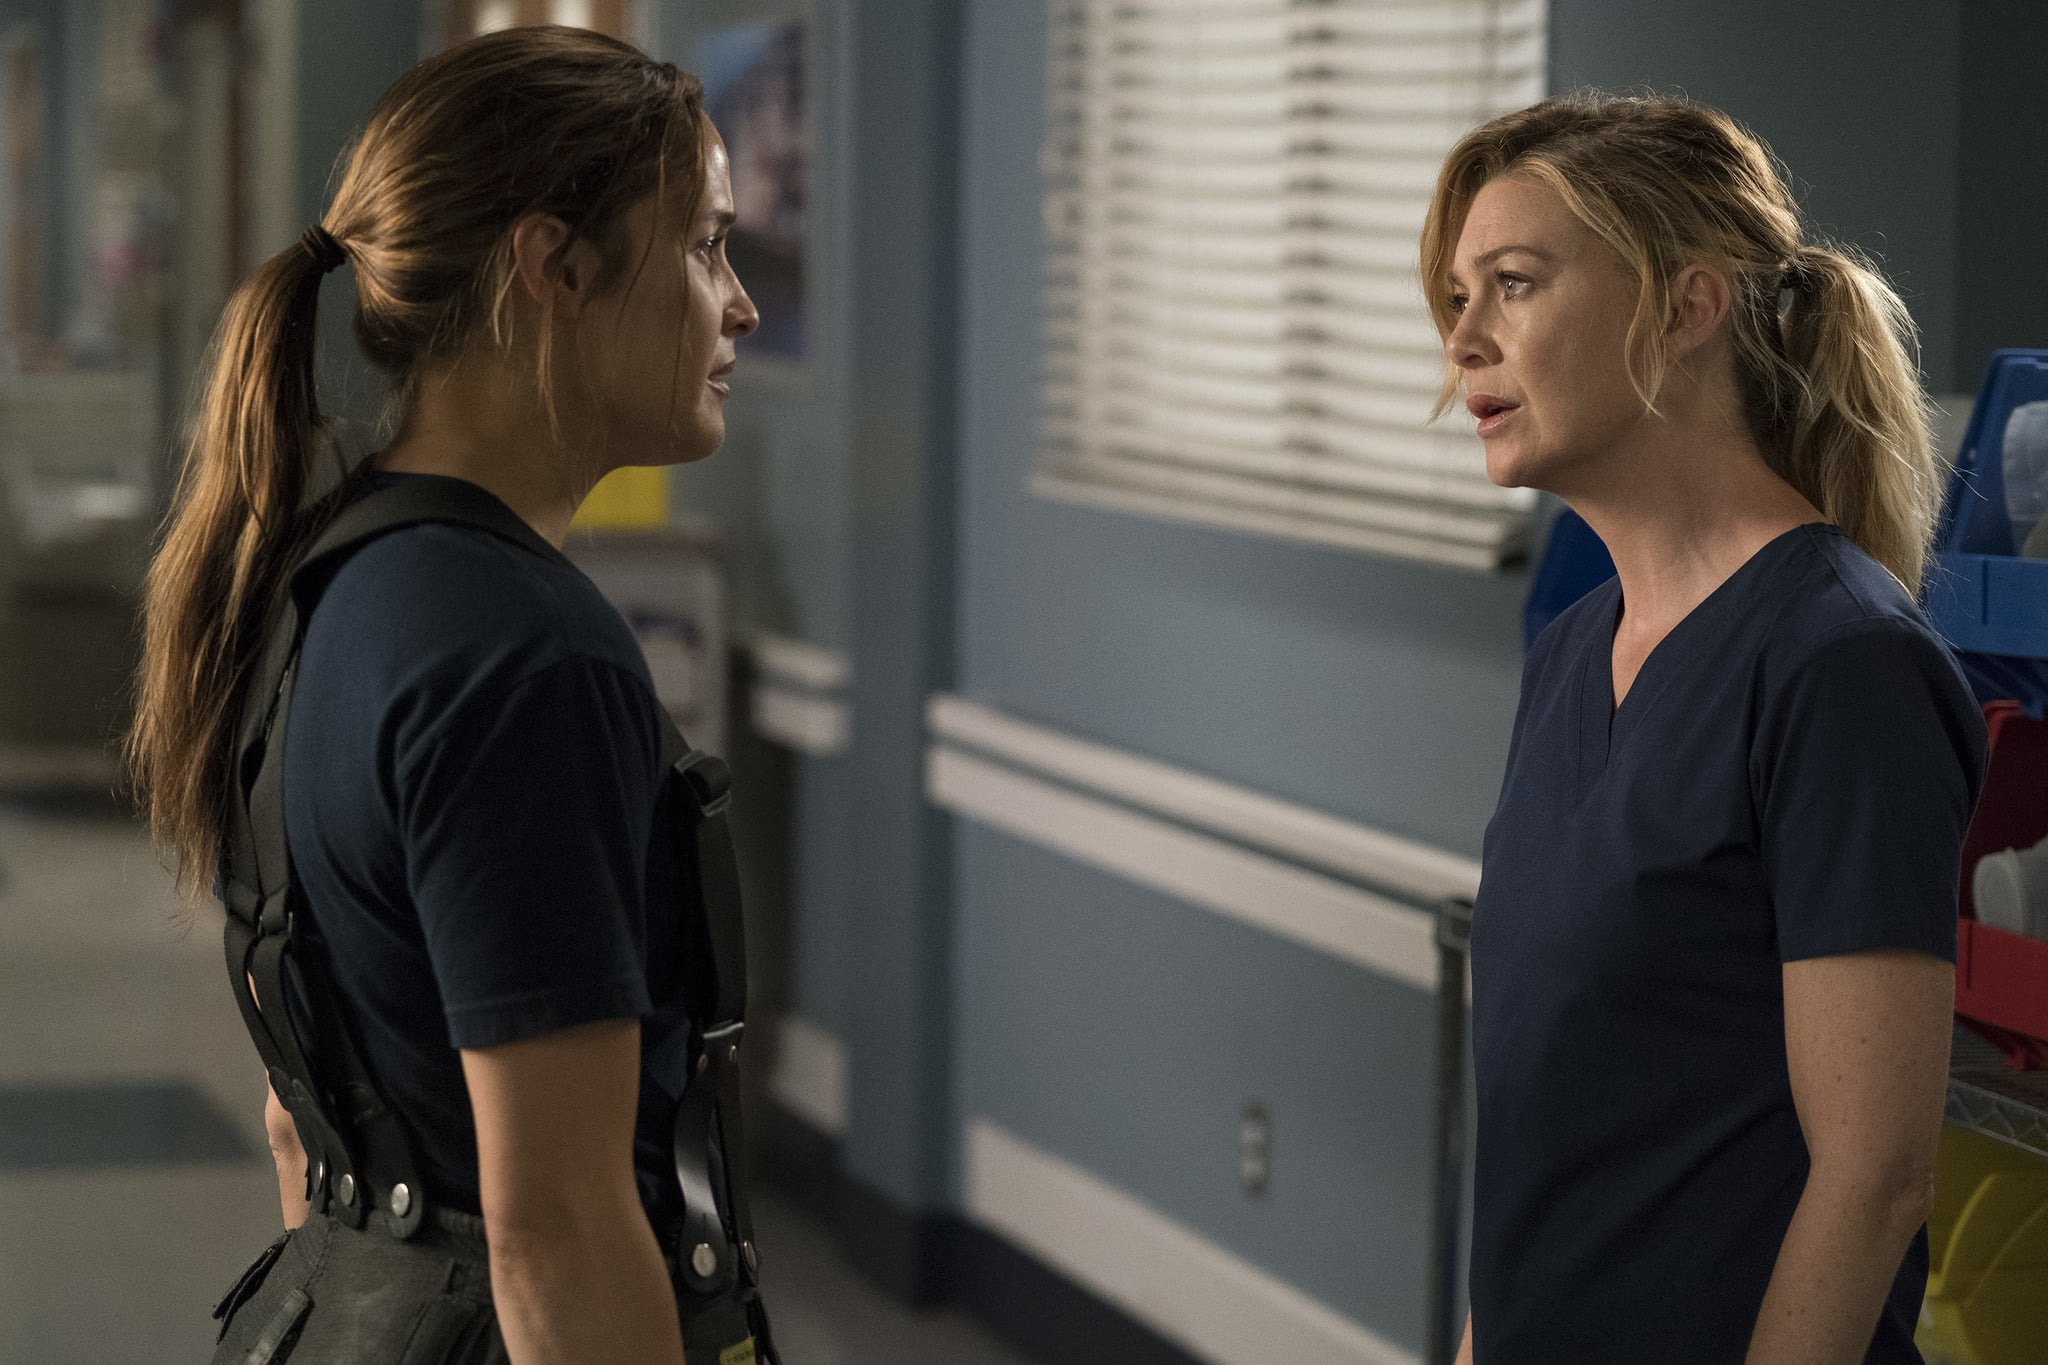 We Finally Know What the Grey's Anatomy Spin-Off Title Is